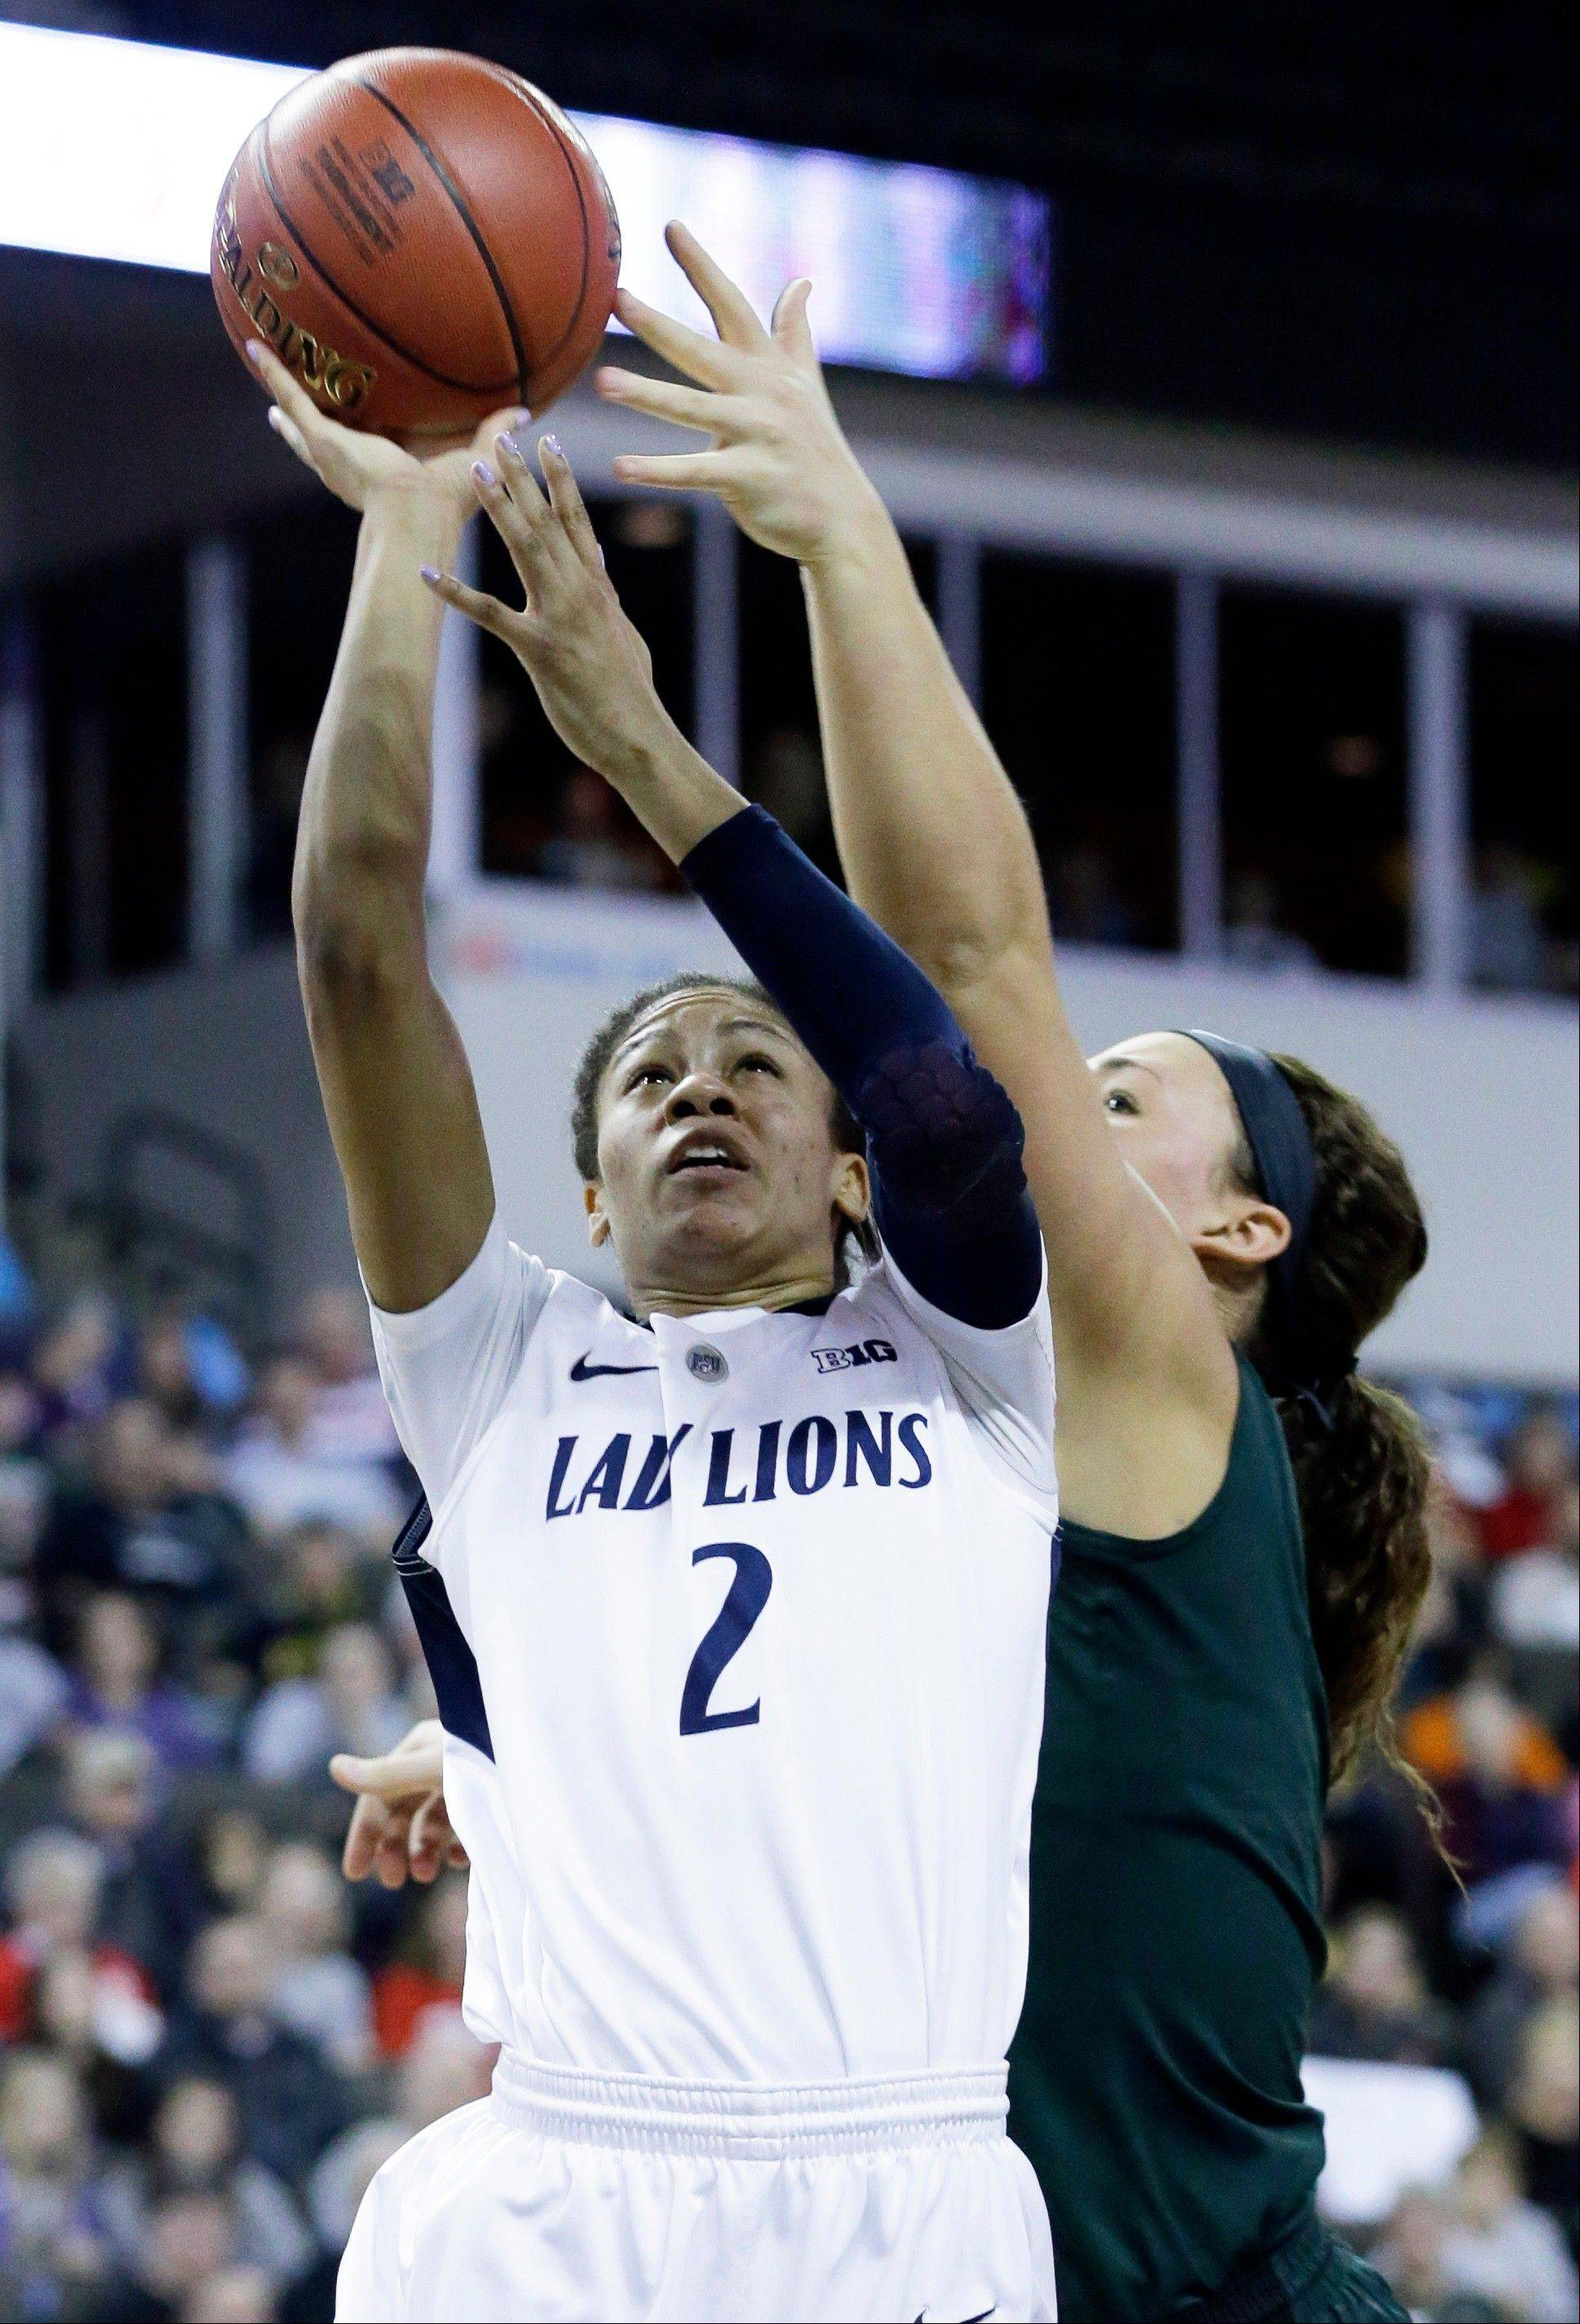 Penn State guard Dara Taylor, left, shoots as Michigan State center Jasmine Hines guards during the second half of an NCAA college basketball game in the Big Ten Conference tournament in Hoffman Estates, Ill., Saturday, March 9, 2013. Michigan State won 54-46. (AP Photo/Nam Y. Huh)